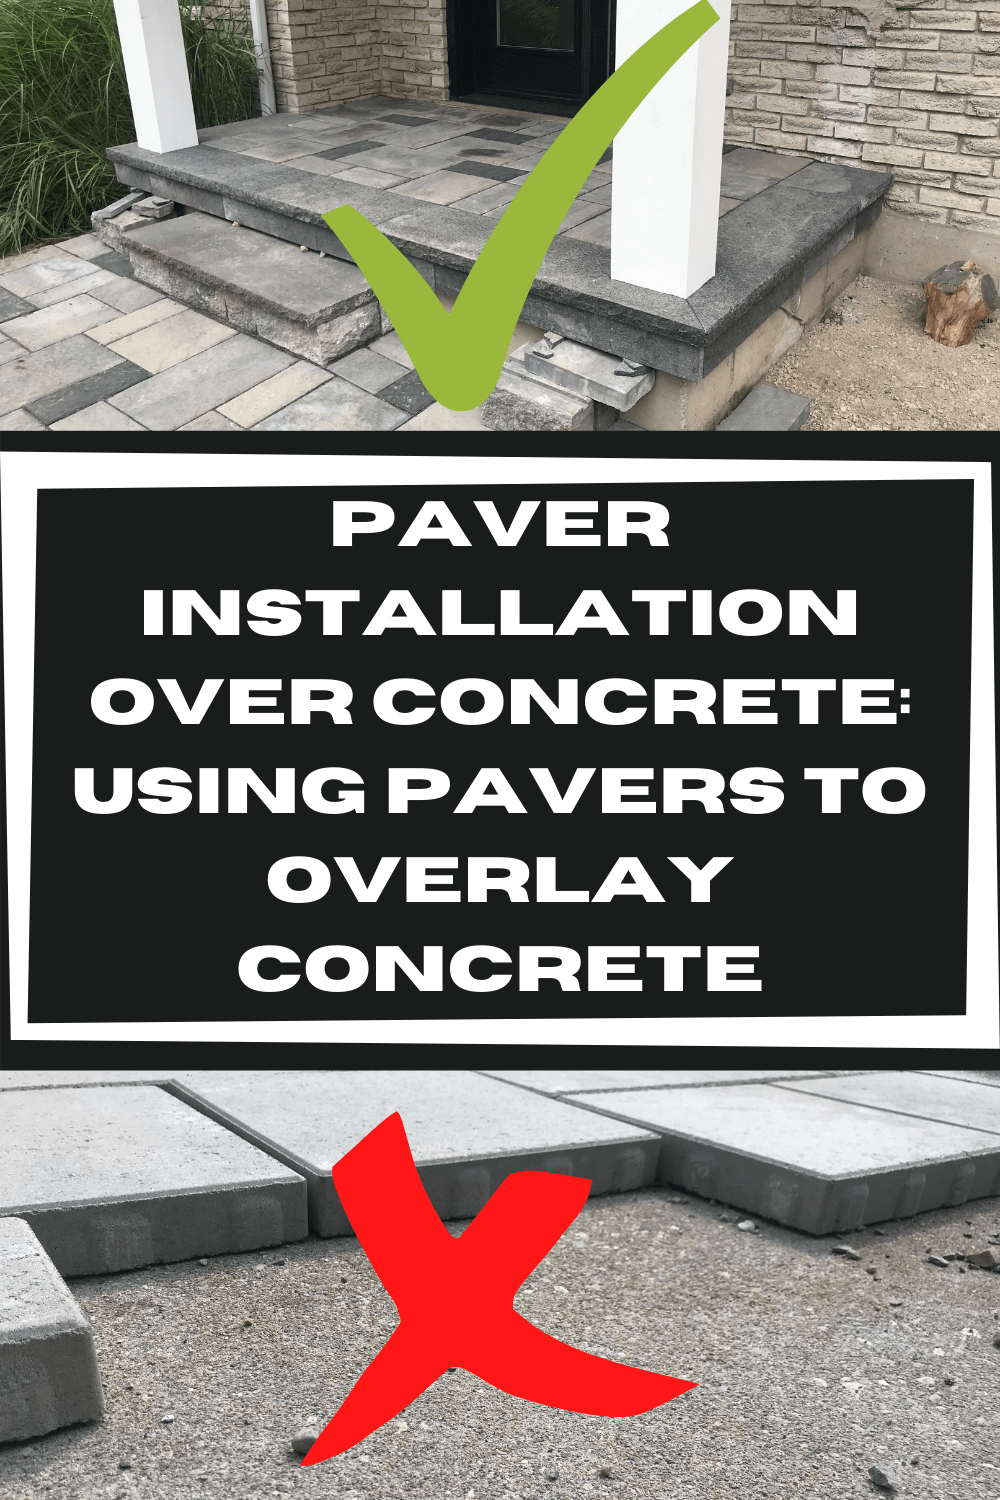 paver-installation-over-concrete-using-pavers-to-overlay-concrete